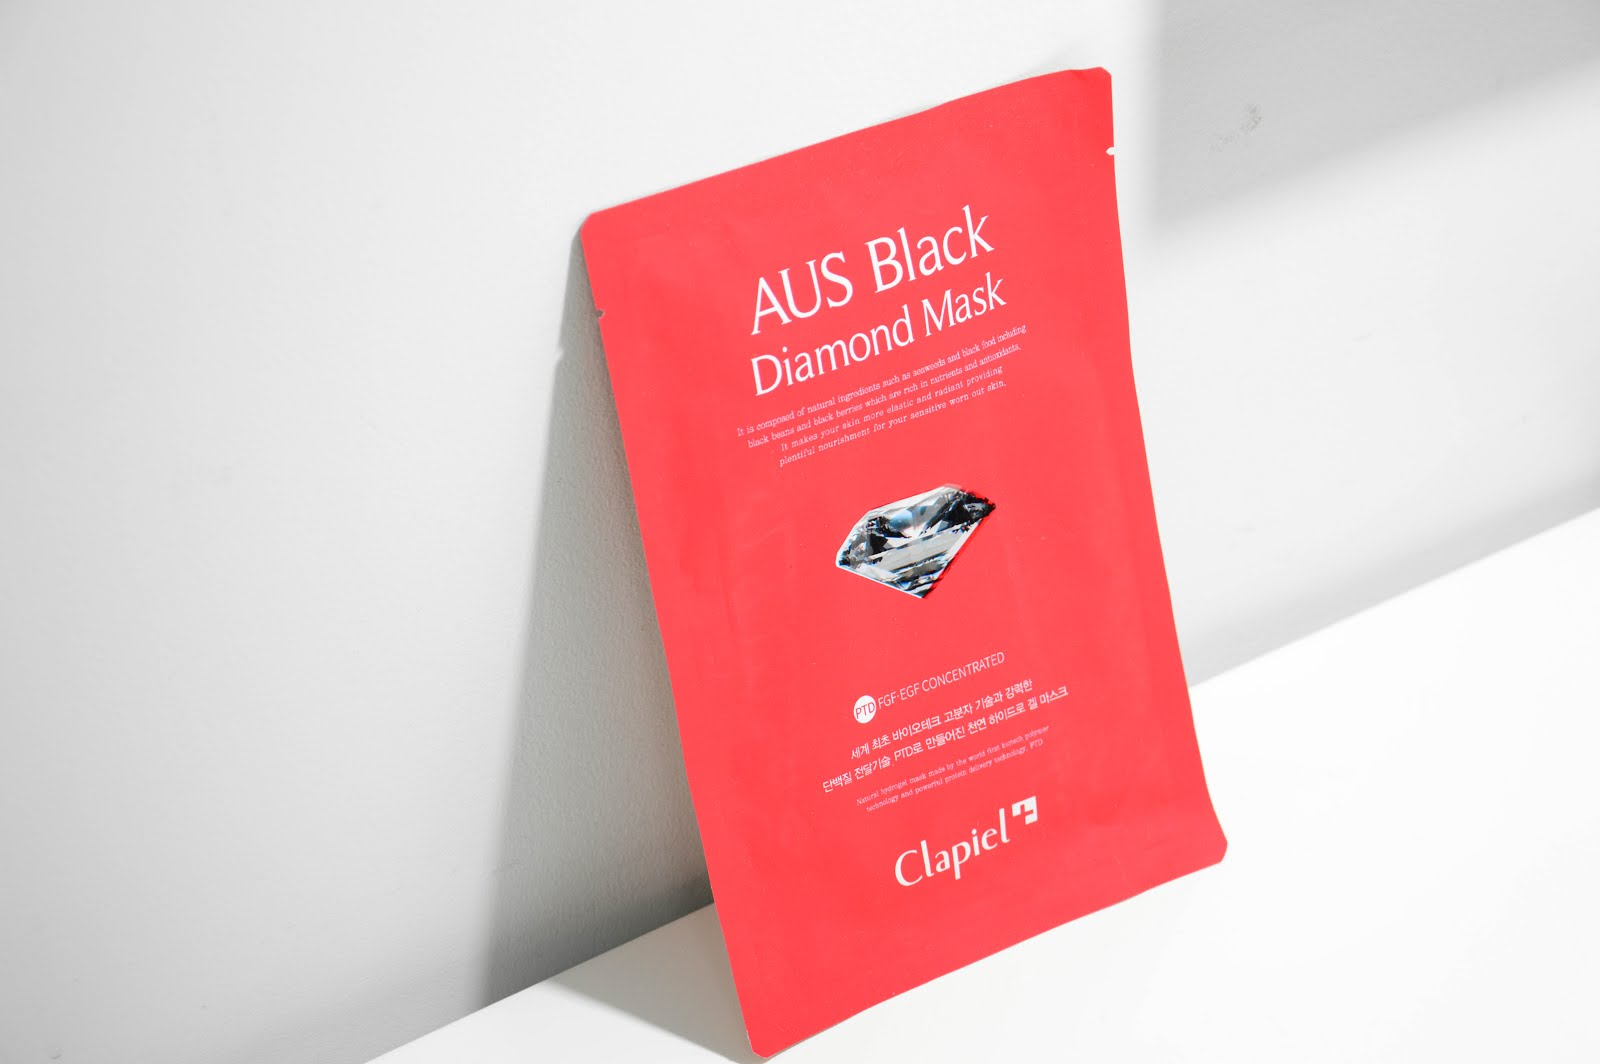 Clapiel AUS Black Diamond Mask review